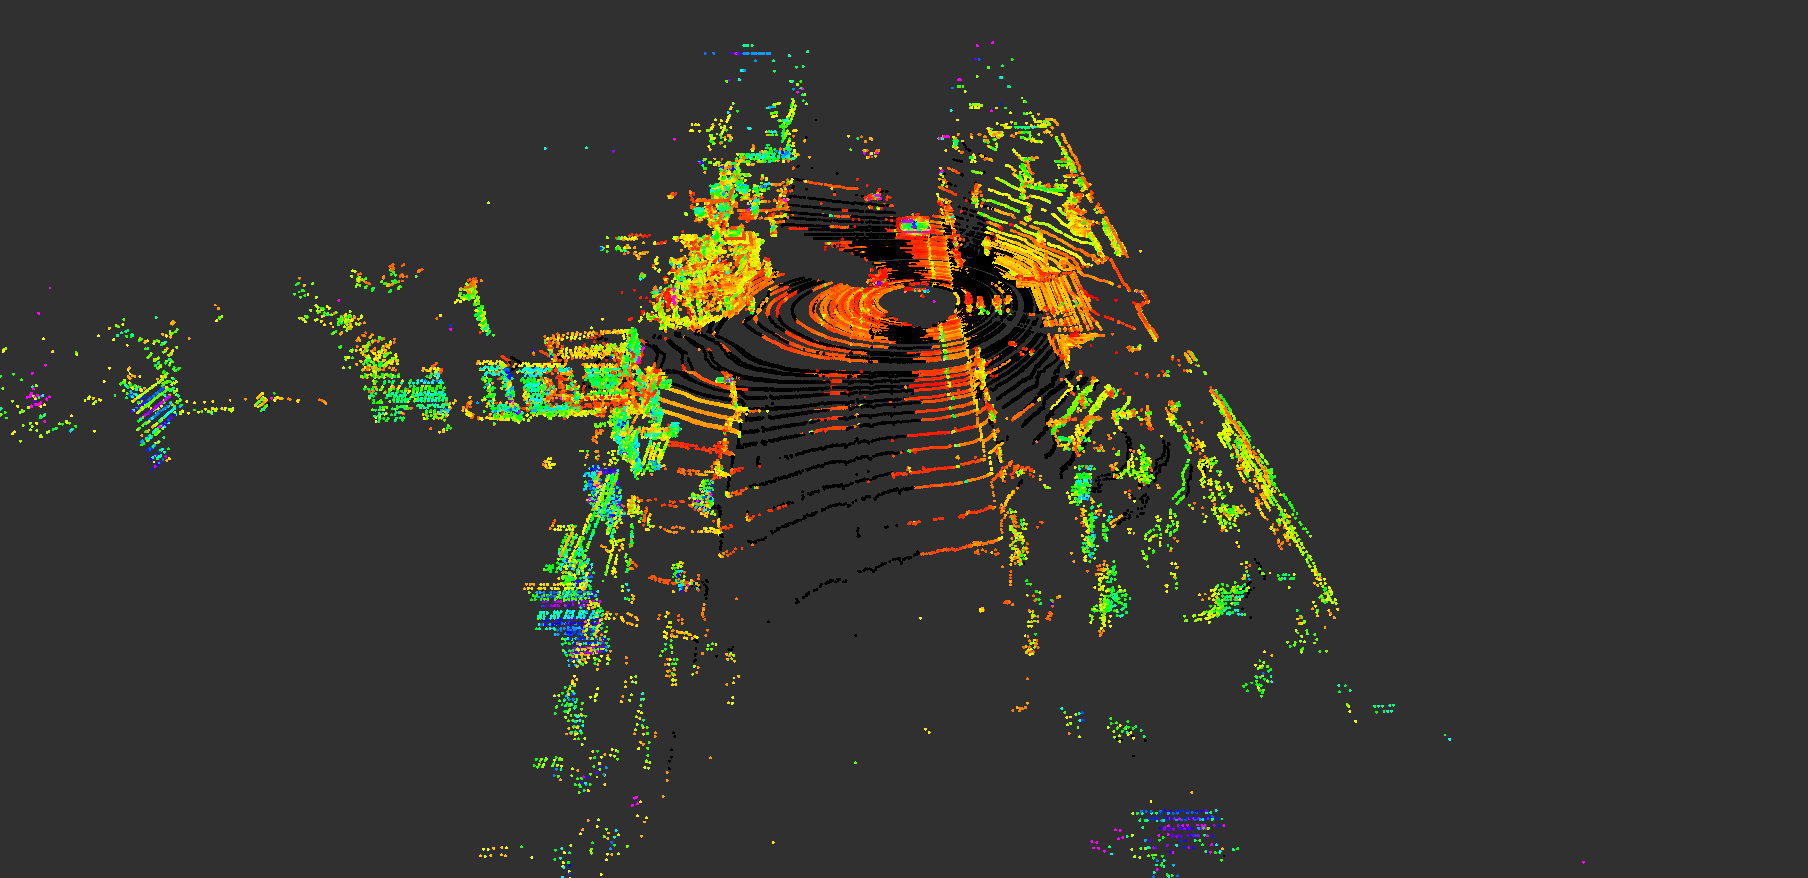 Point Cloud of outside world as detected by the Velodyne